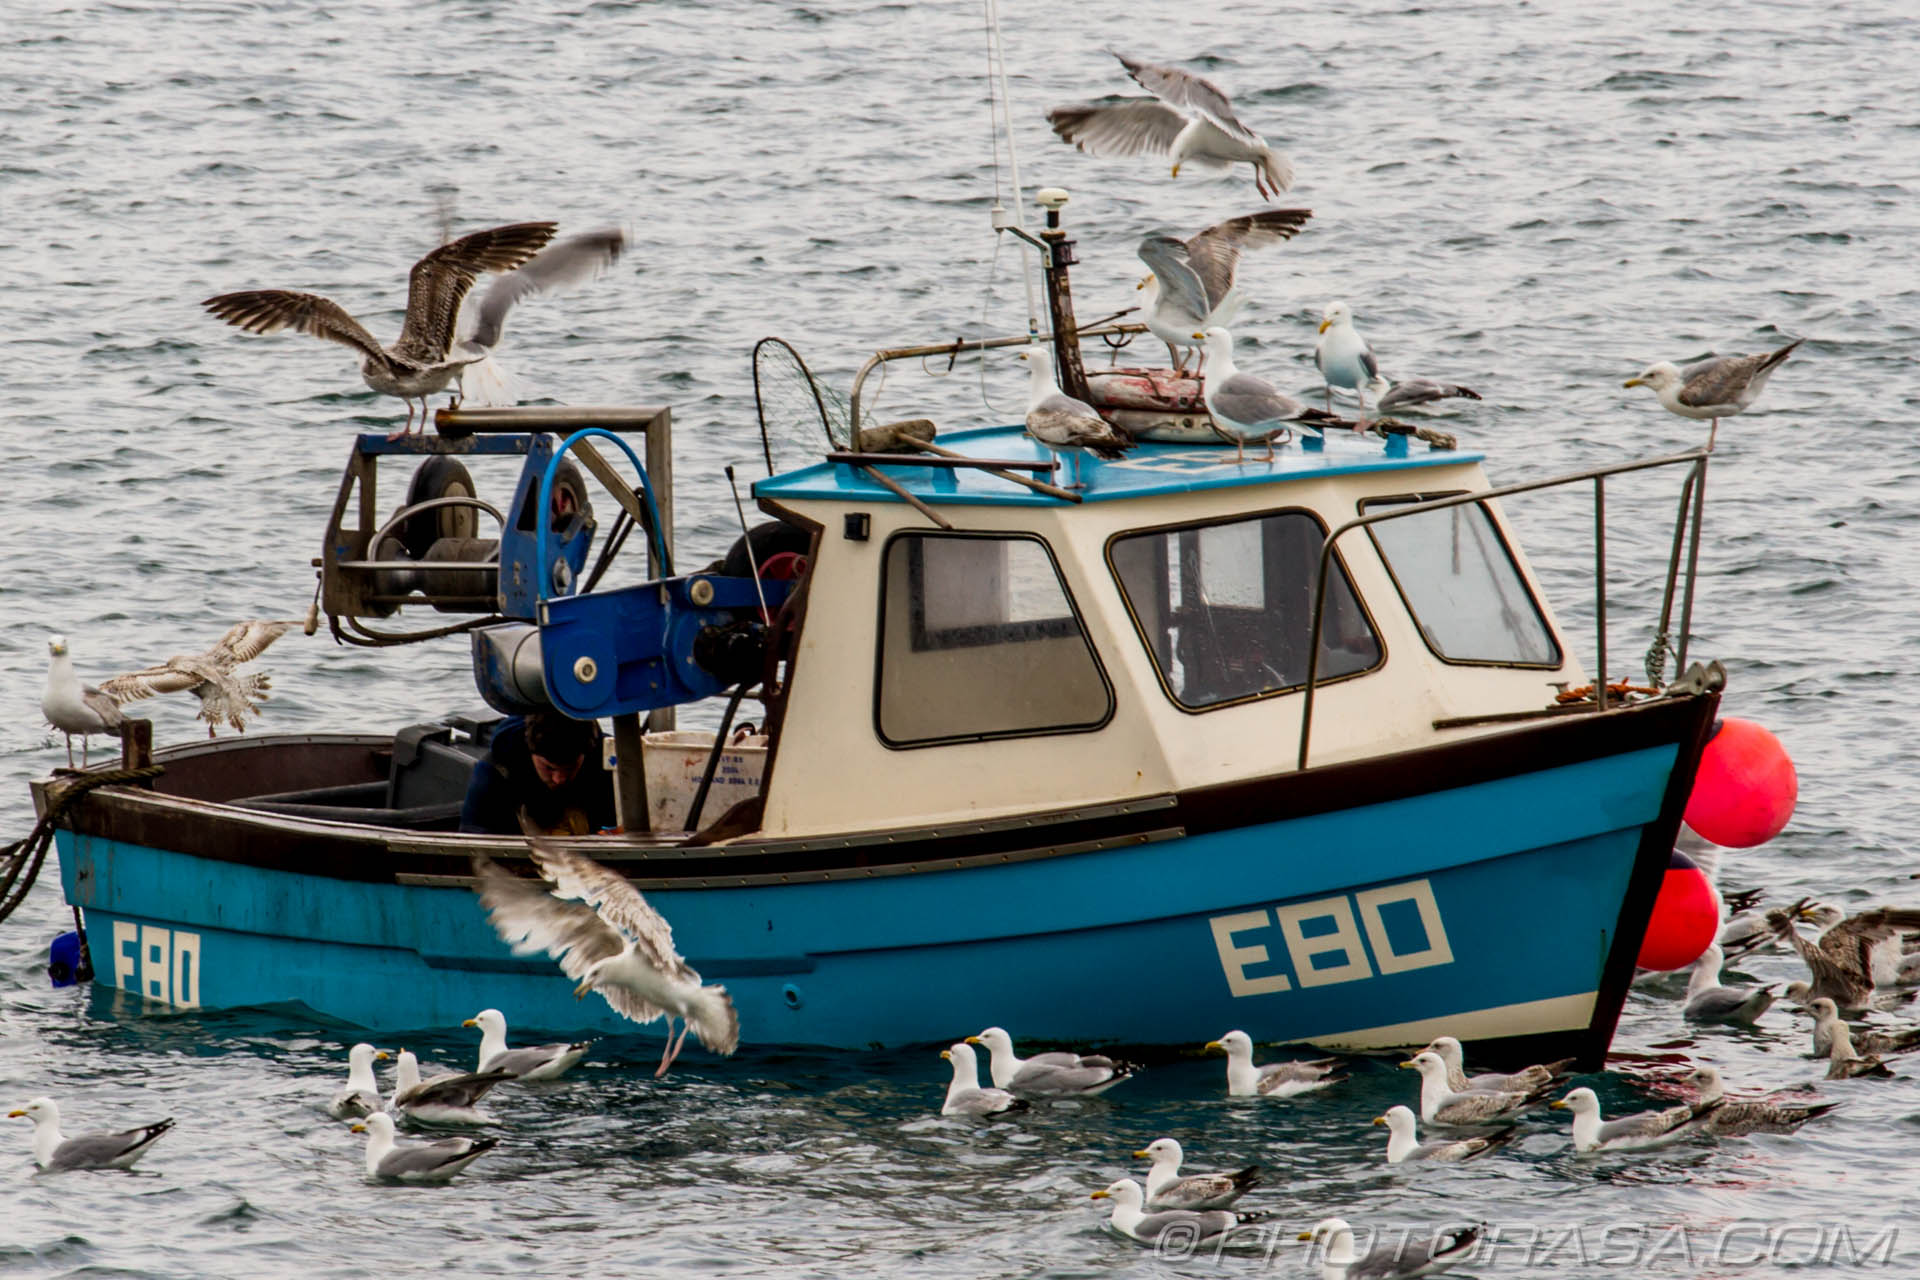 http://photorasa.com/lyme-regis/seagulls-swarming-over-returned-fishing-boat/